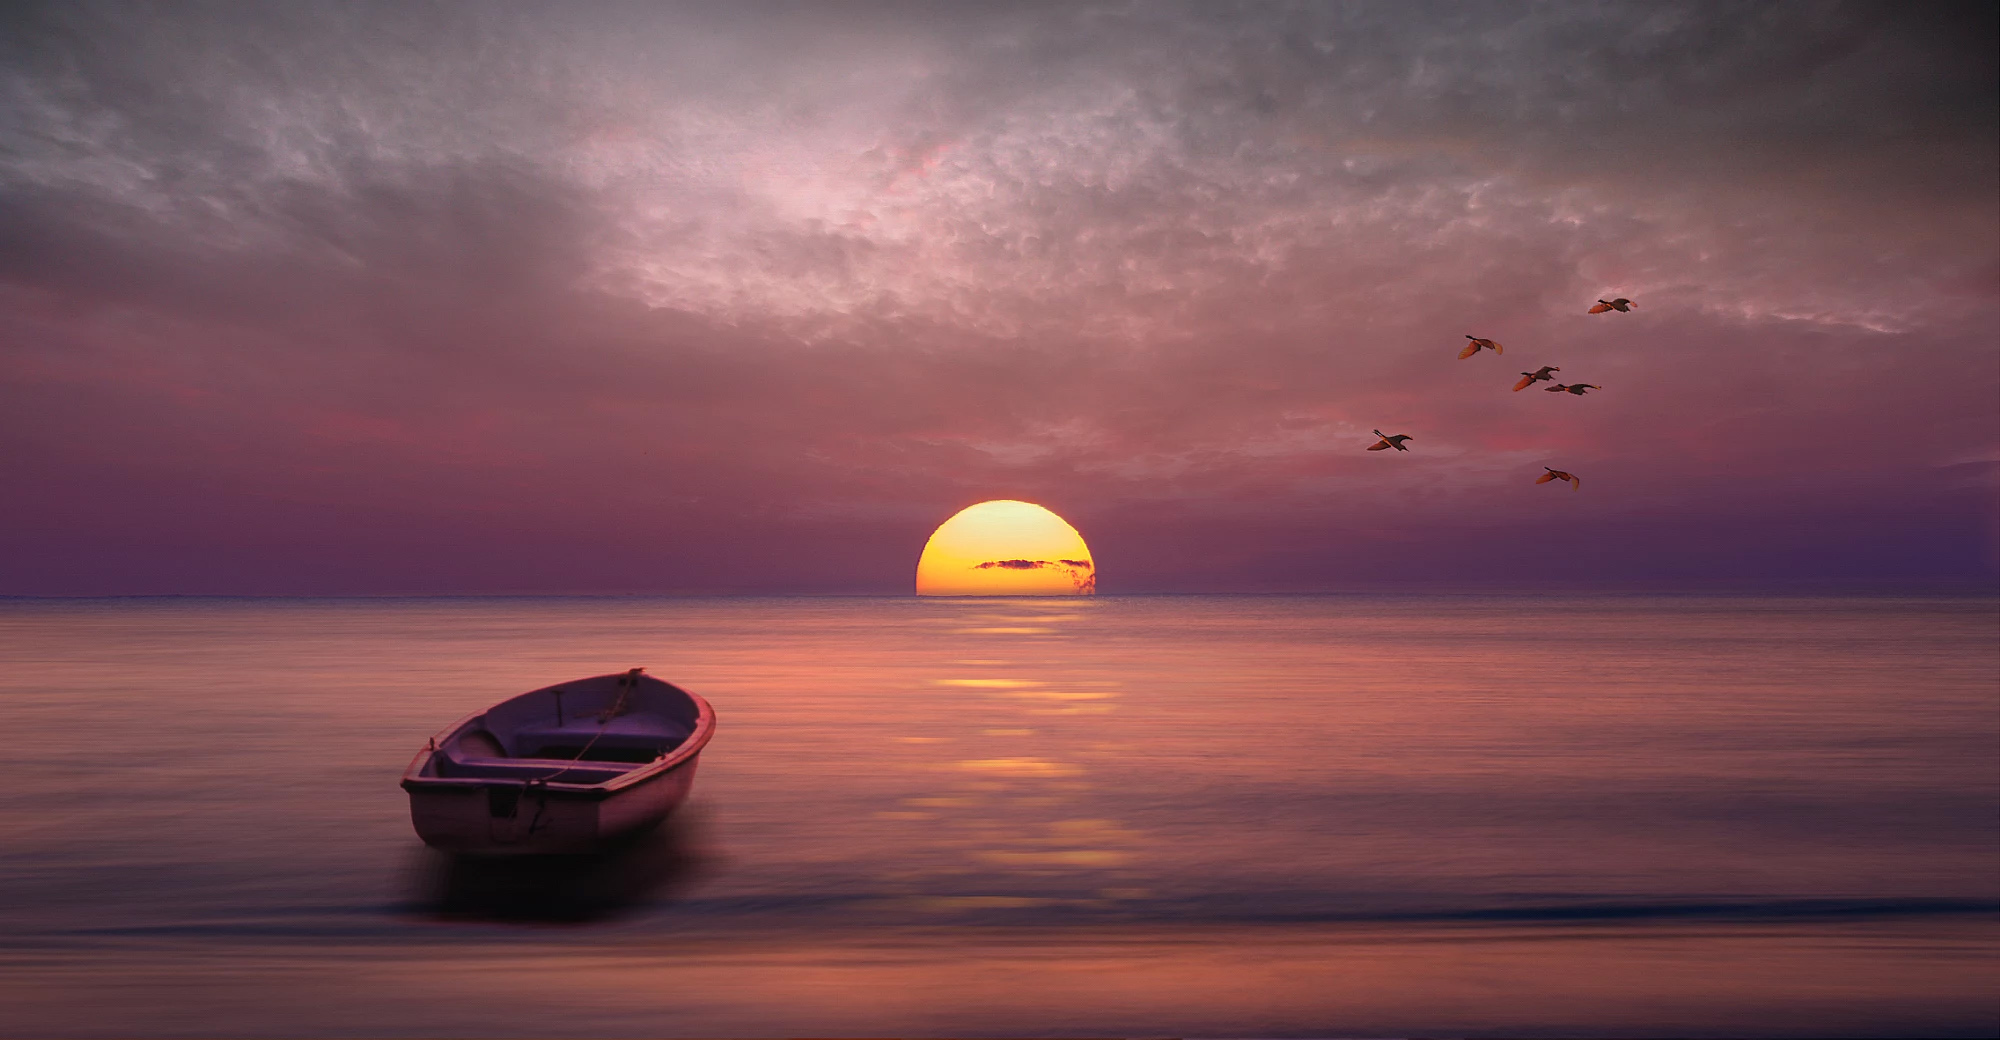 Seascape Sunset Photography By Nikos Bantouvakis